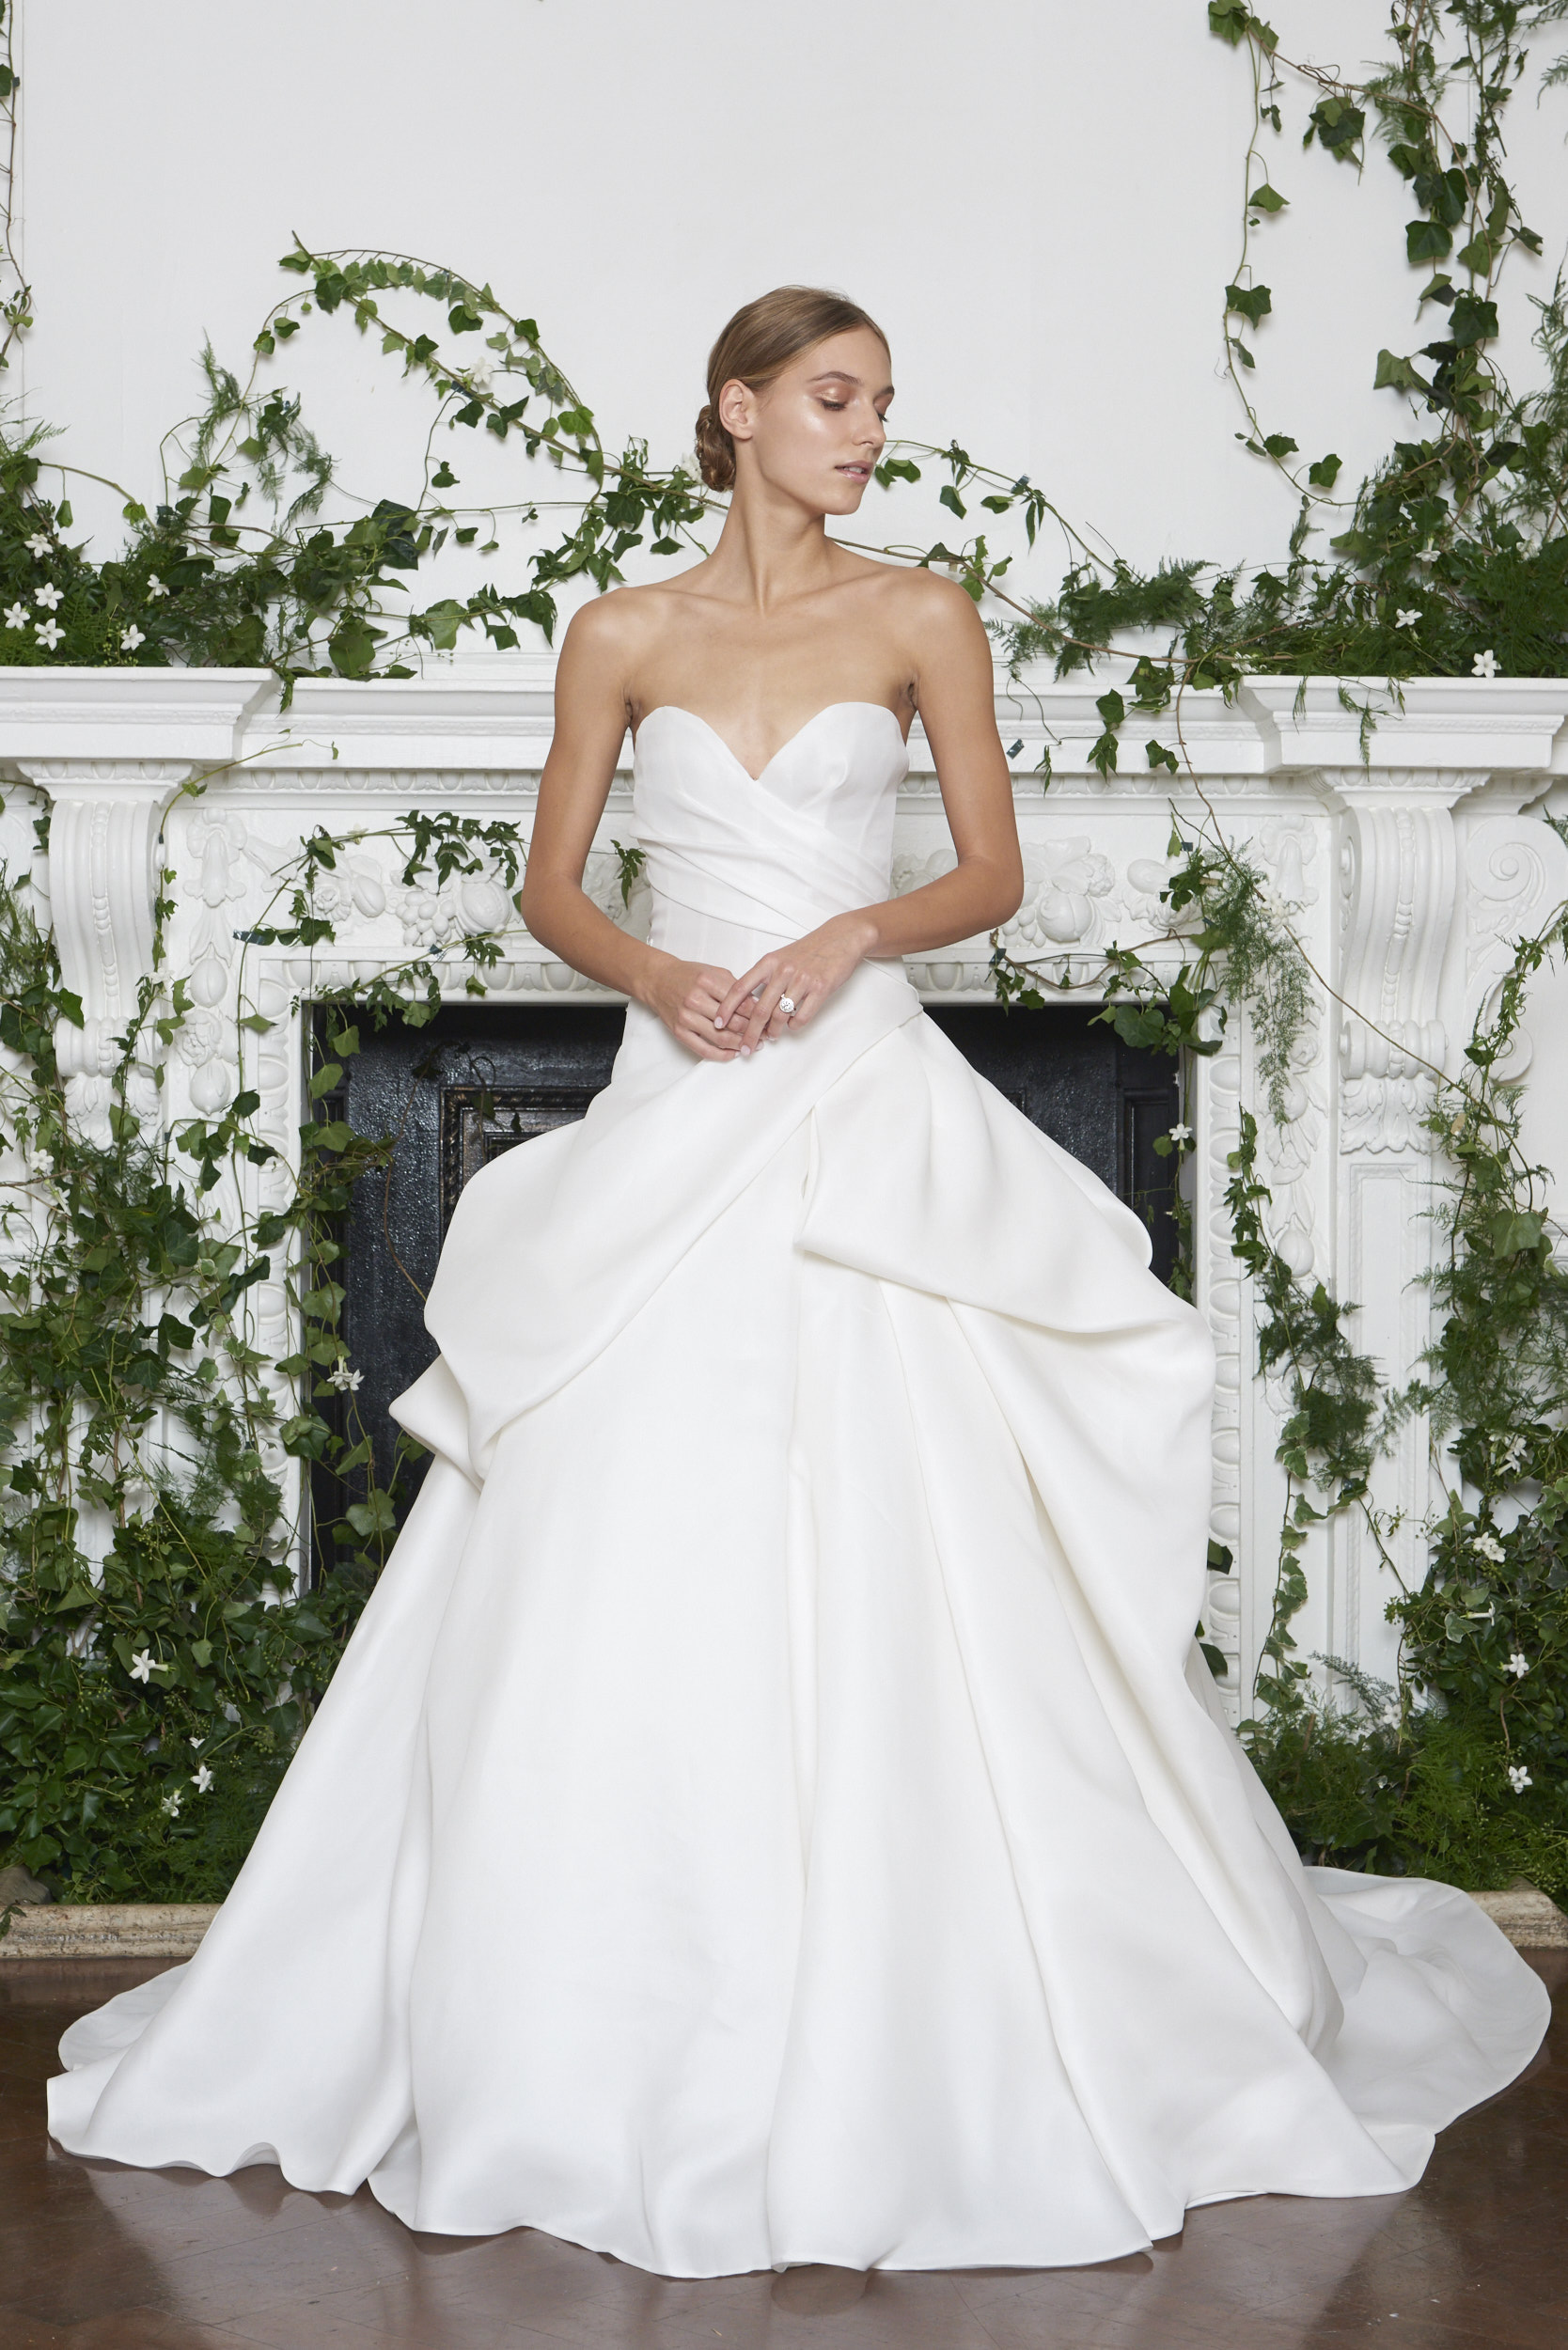 Monique Lhuillier Fall 2018 Strapless Ball Gown with Layered Skirt